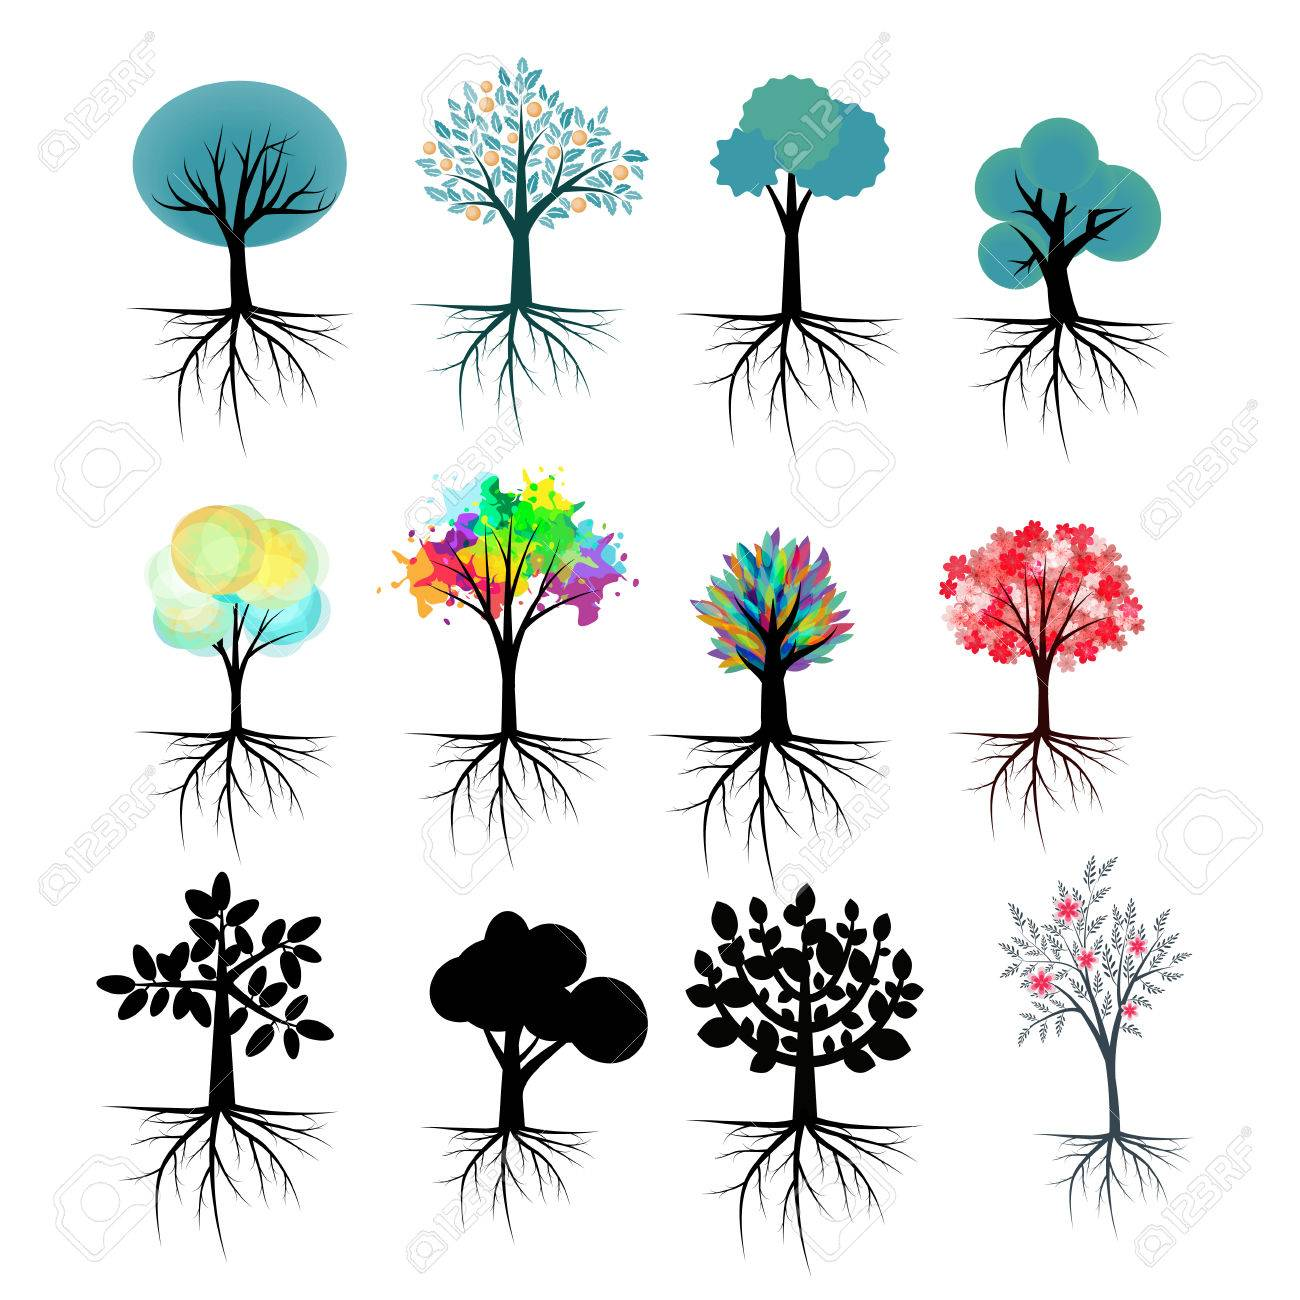 vector trees collection with roots royalty free cliparts vectors rh 123rf com vector trees free download vector trees in plan